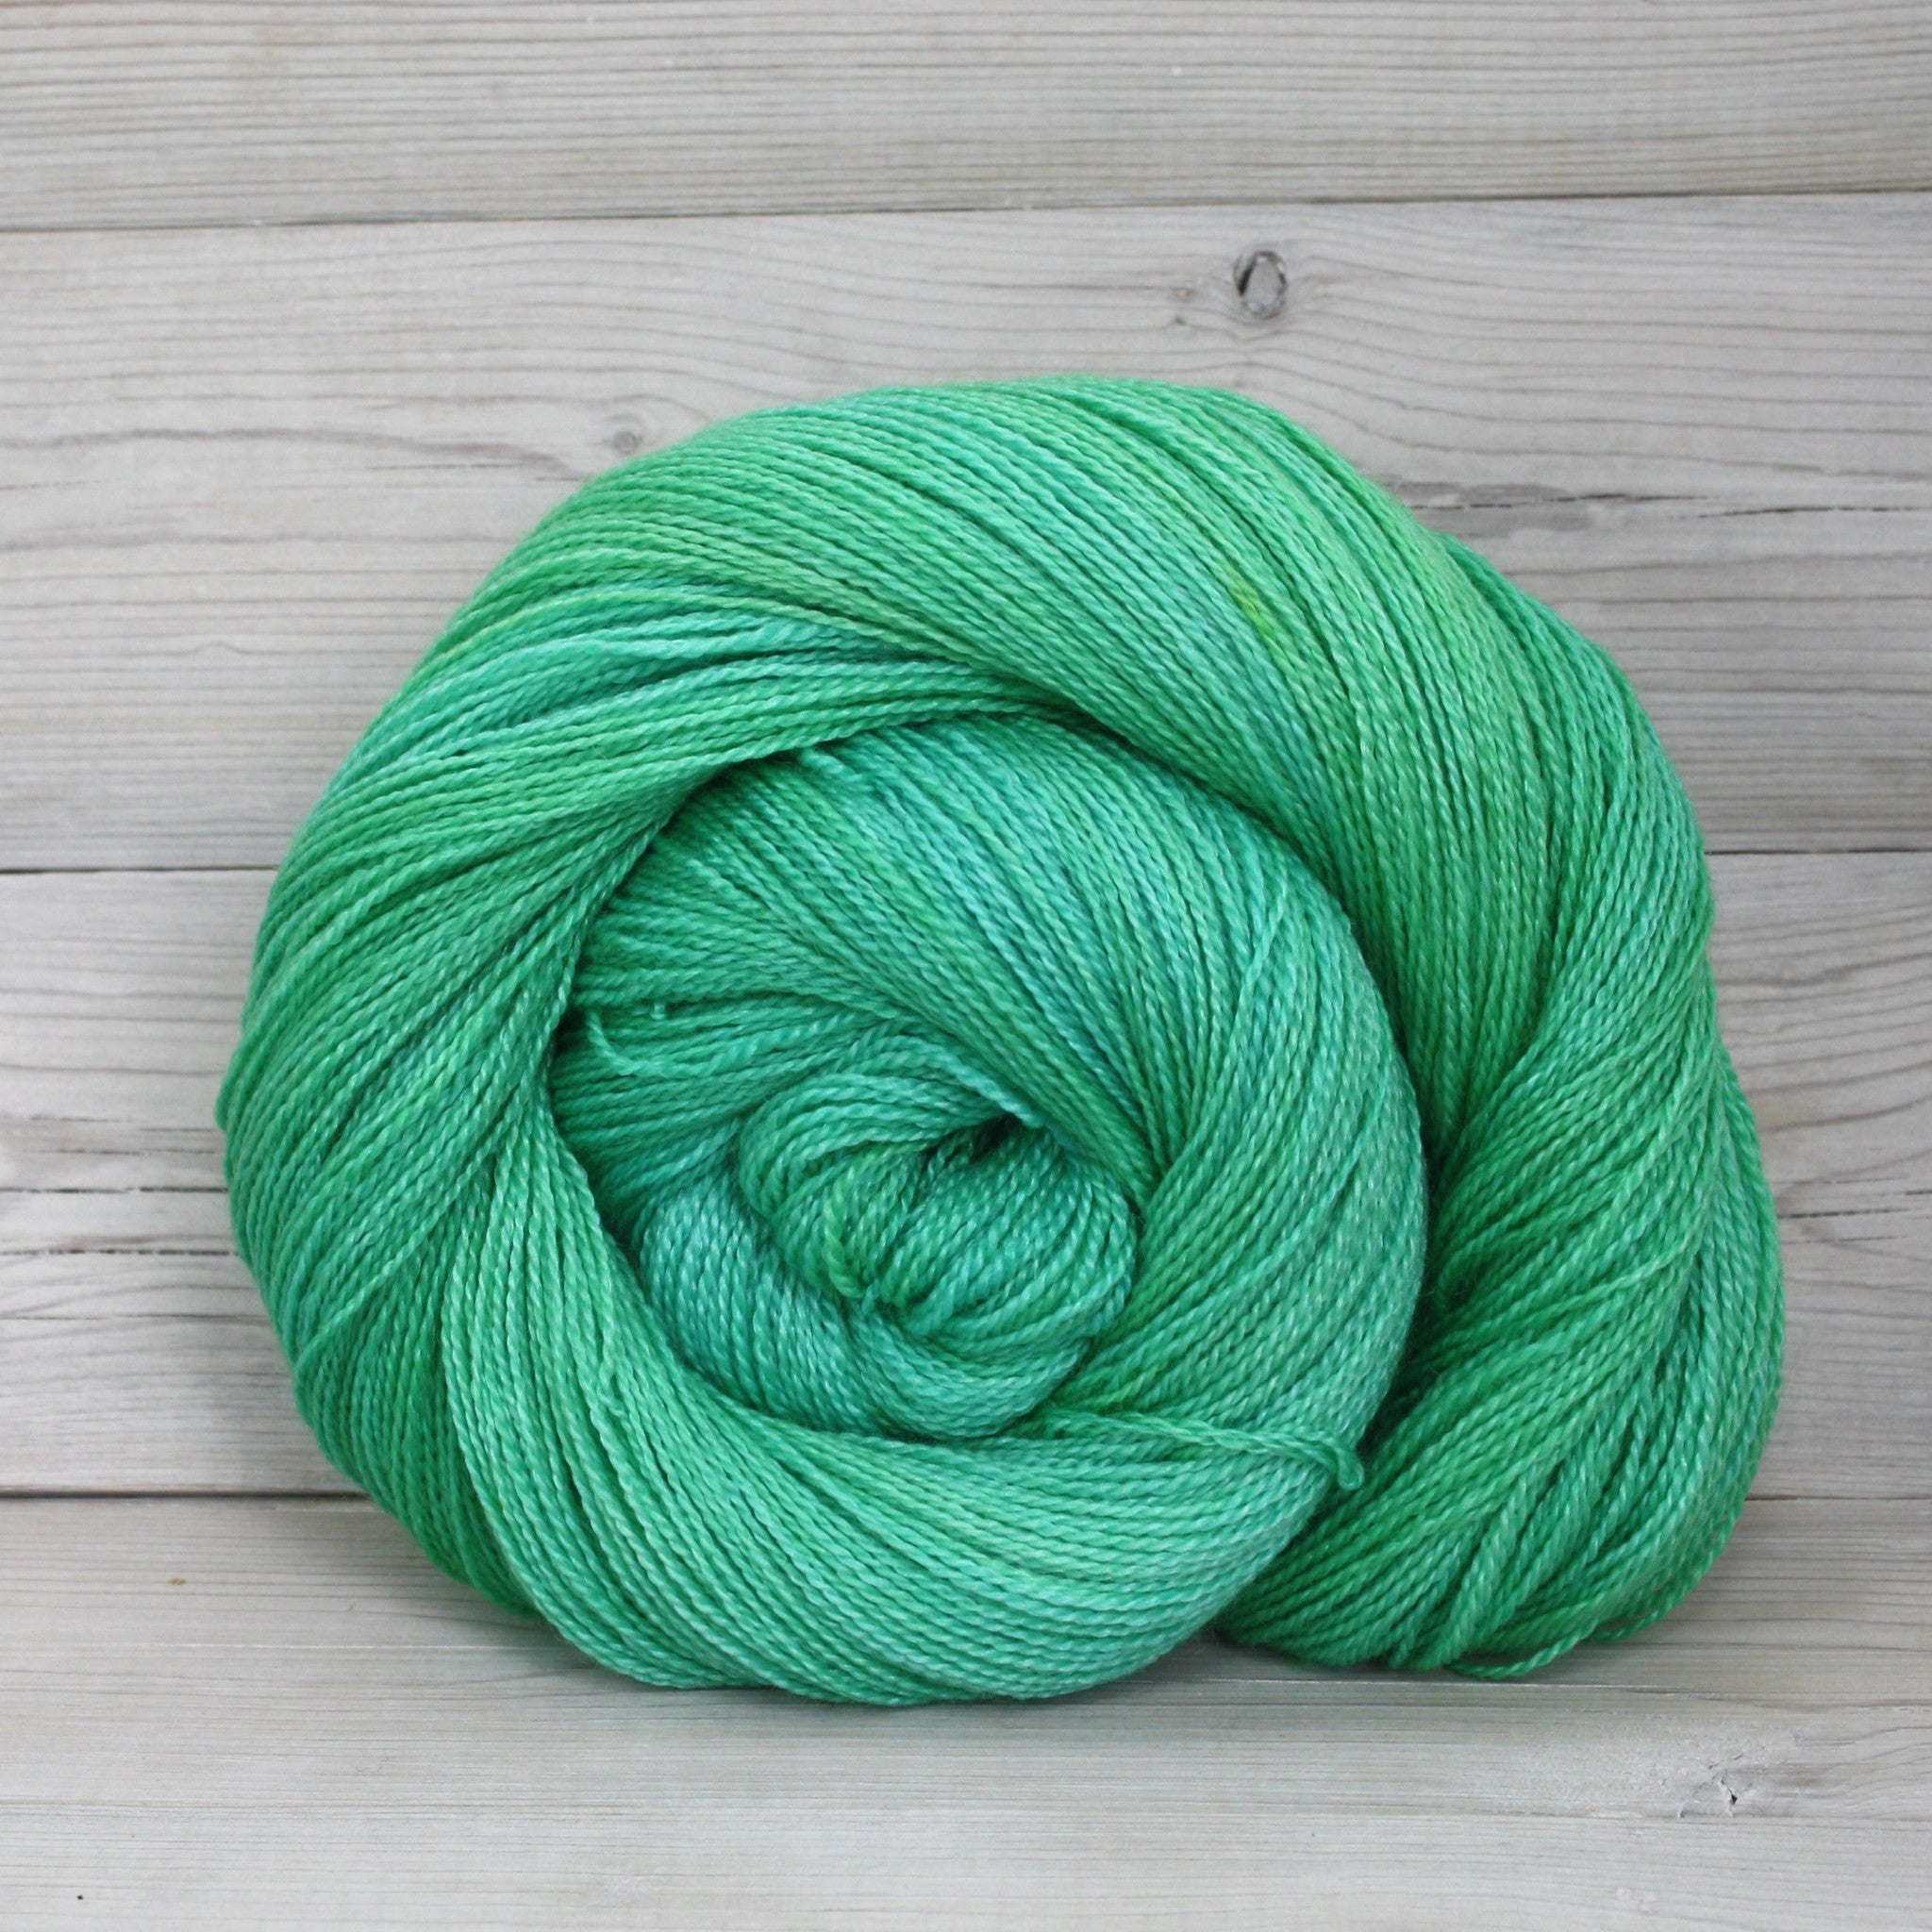 Luna Grey Fiber Arts Starbright Yarn | Colorway: Spearmint